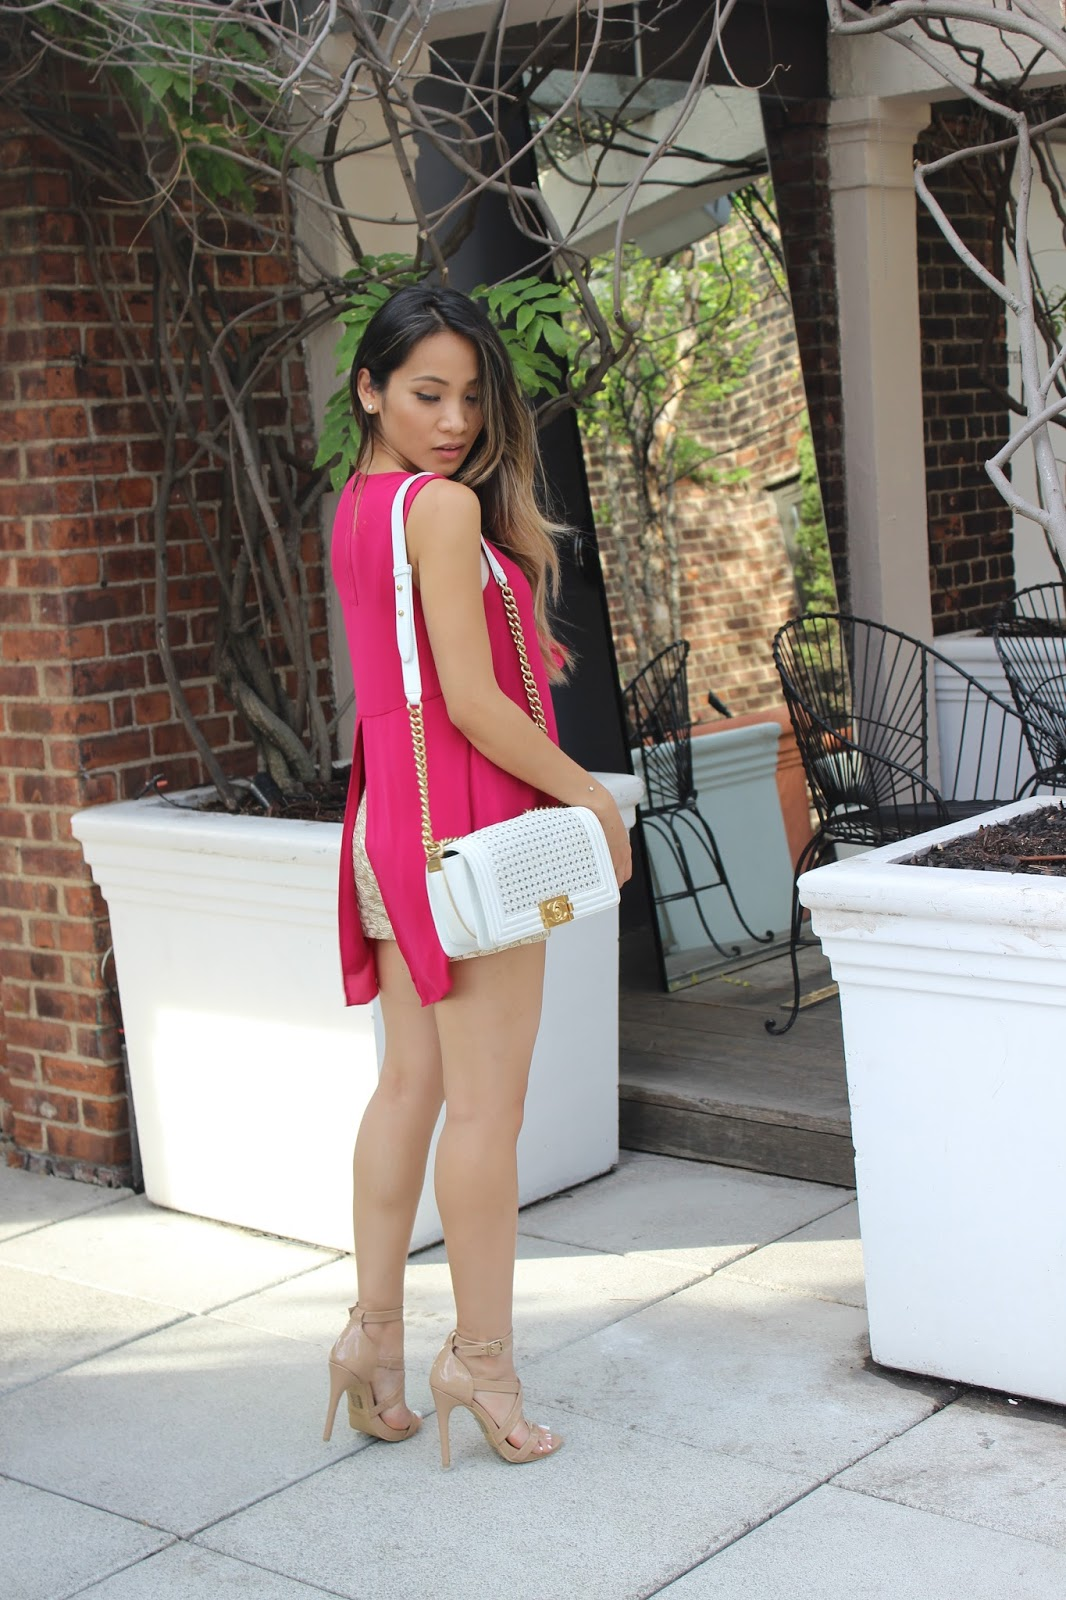 bcbg back slit shirt, melba nguyen, fashion blogger, forever21 shoes, hudson hotel, new york fashion week